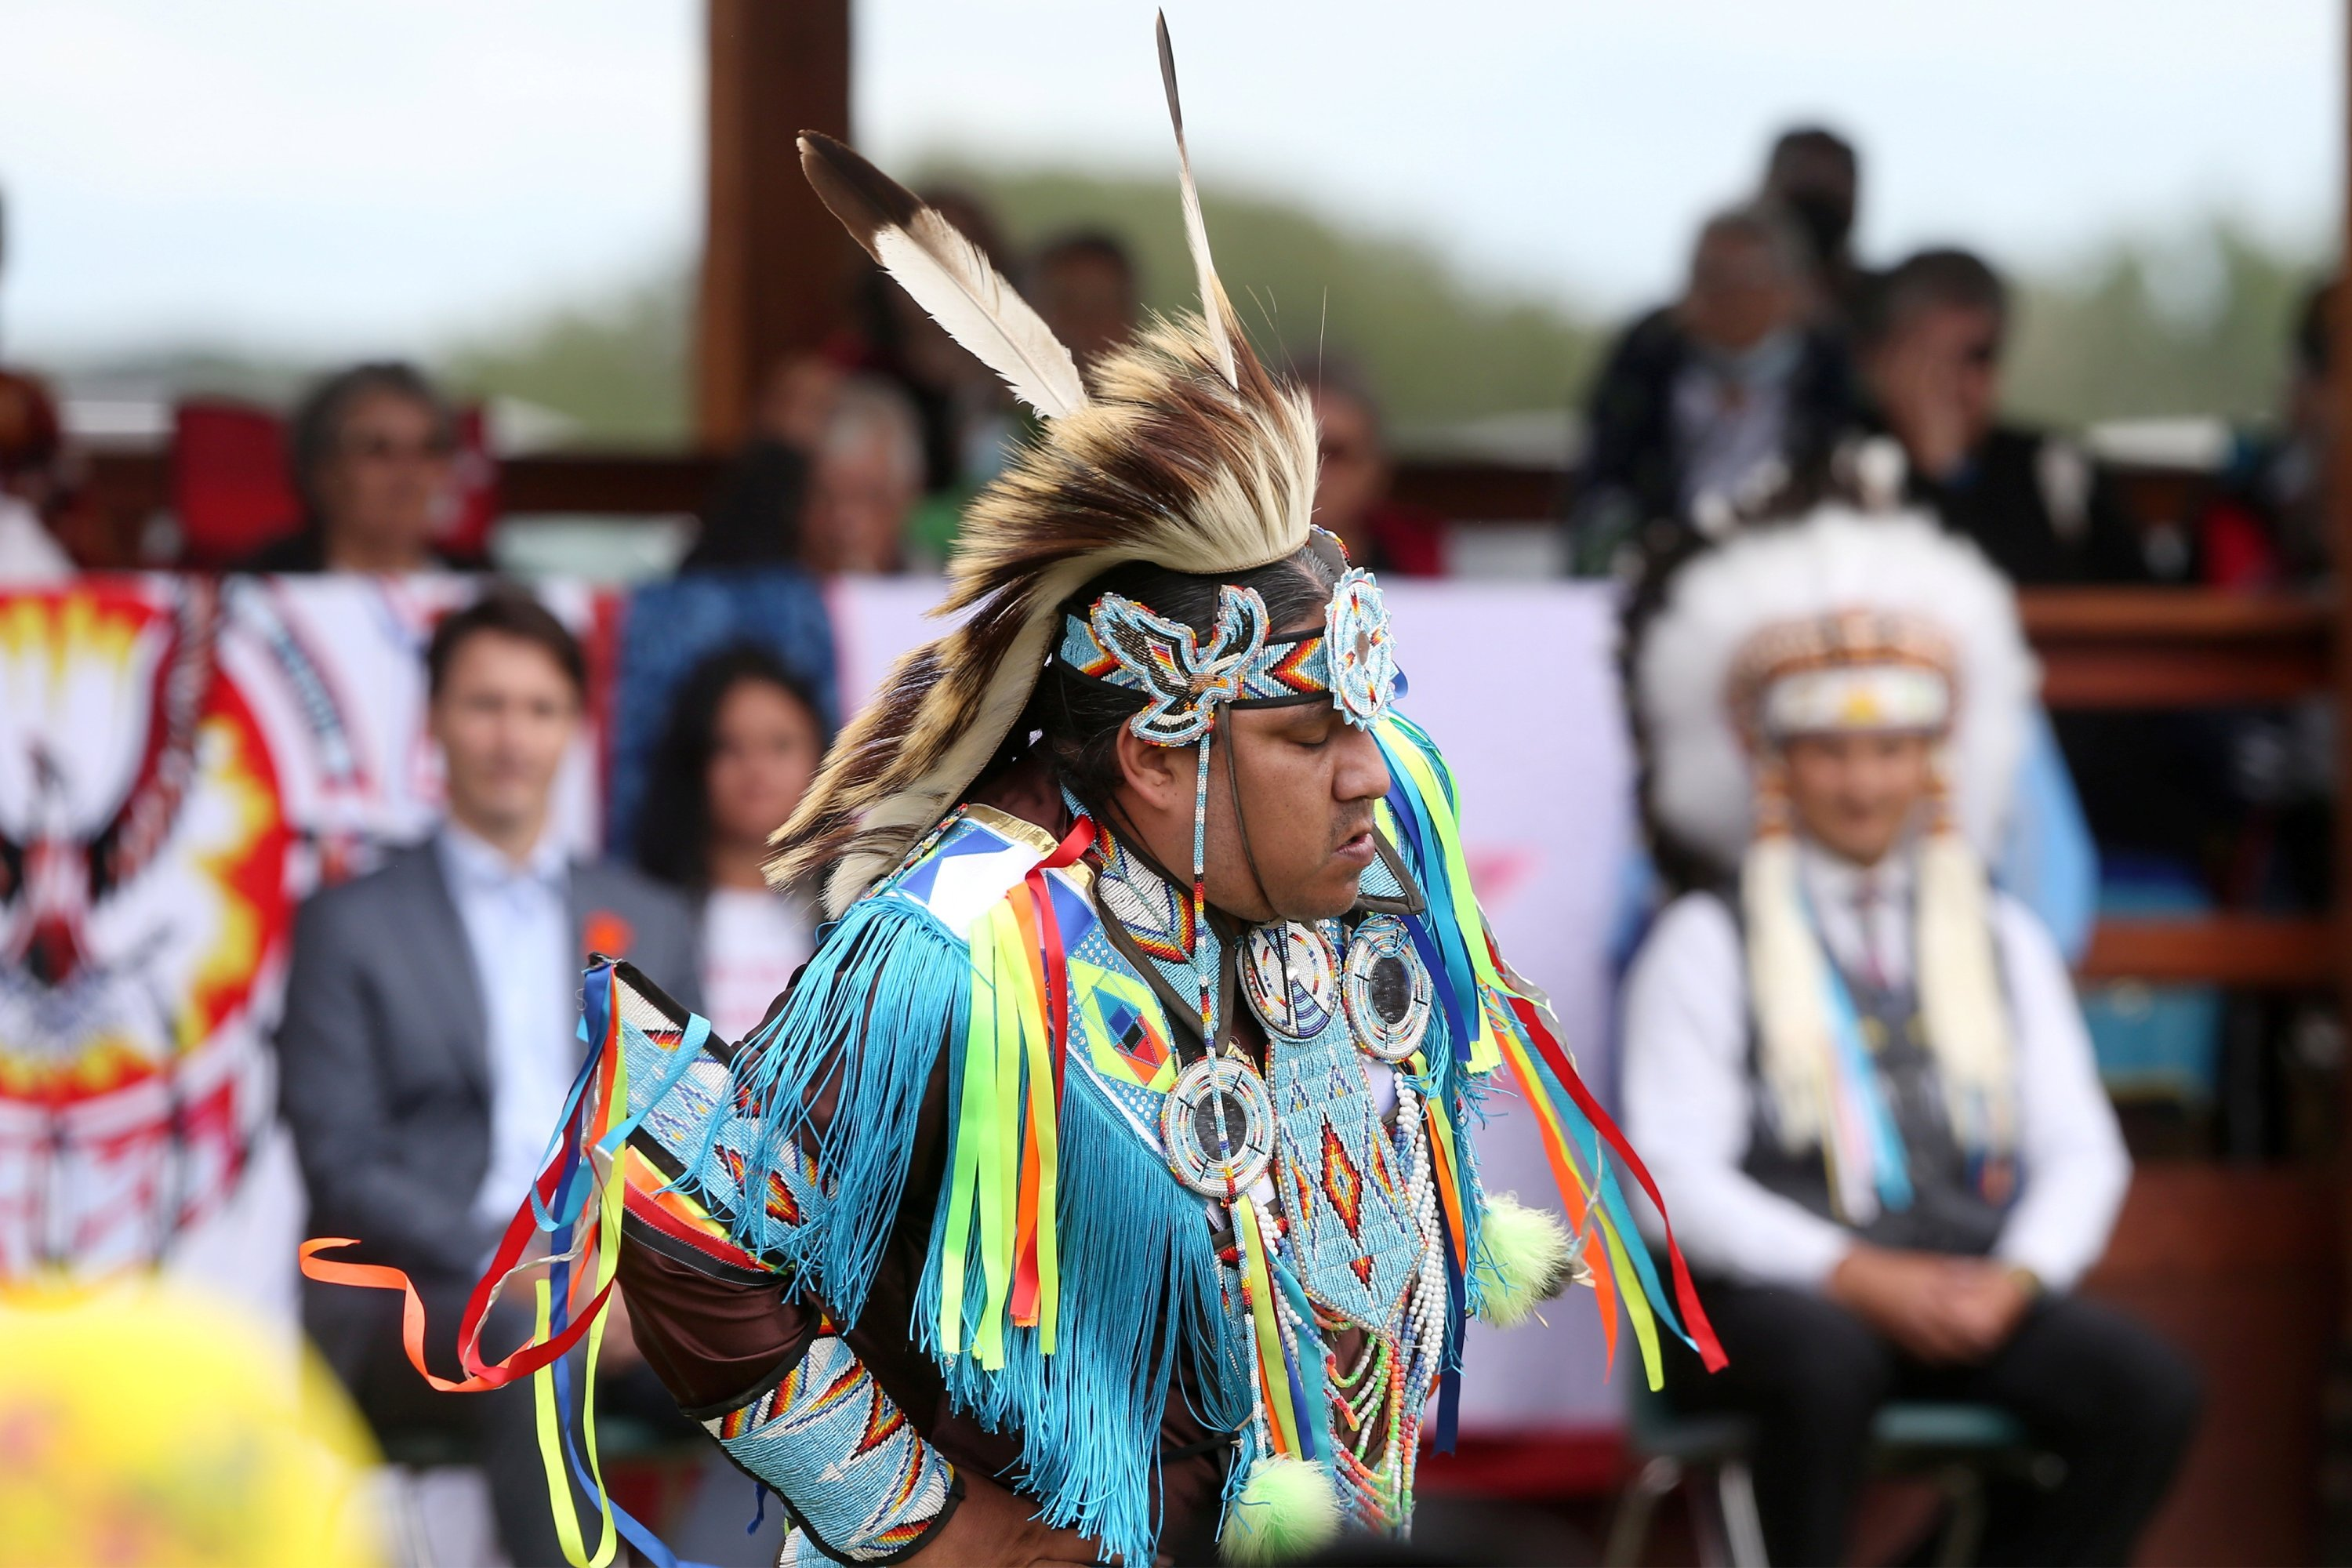 A dancer performs for Canada's Prime Minister Justin Trudeau and other dignitaries in the Cowessess First Nation, where a search had found 751 unmarked graves from the former Marieval Indian Residential School near Grayson, Saskatchewan, Canada, July 6, 2021. (REUTERS Photo)